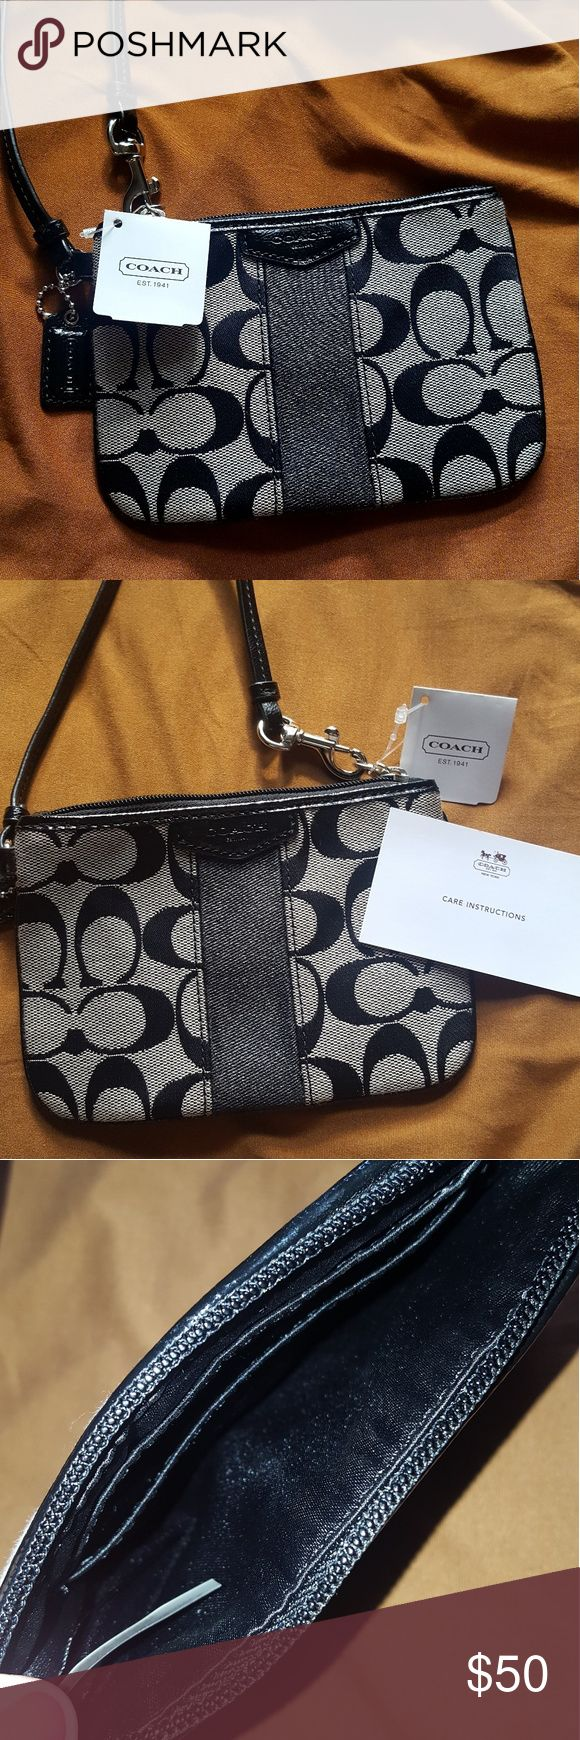 Coach Classic Wristlet-NWT Coach wristlet NWT, classic beige/grey and black with wrist strap and care instructions card. Never used!! Very clean inside and still in new shape (meaning that it's not stretched or bent at all). Included are pictures inside and out, feel free to contact me with any questions. Coach Accessories